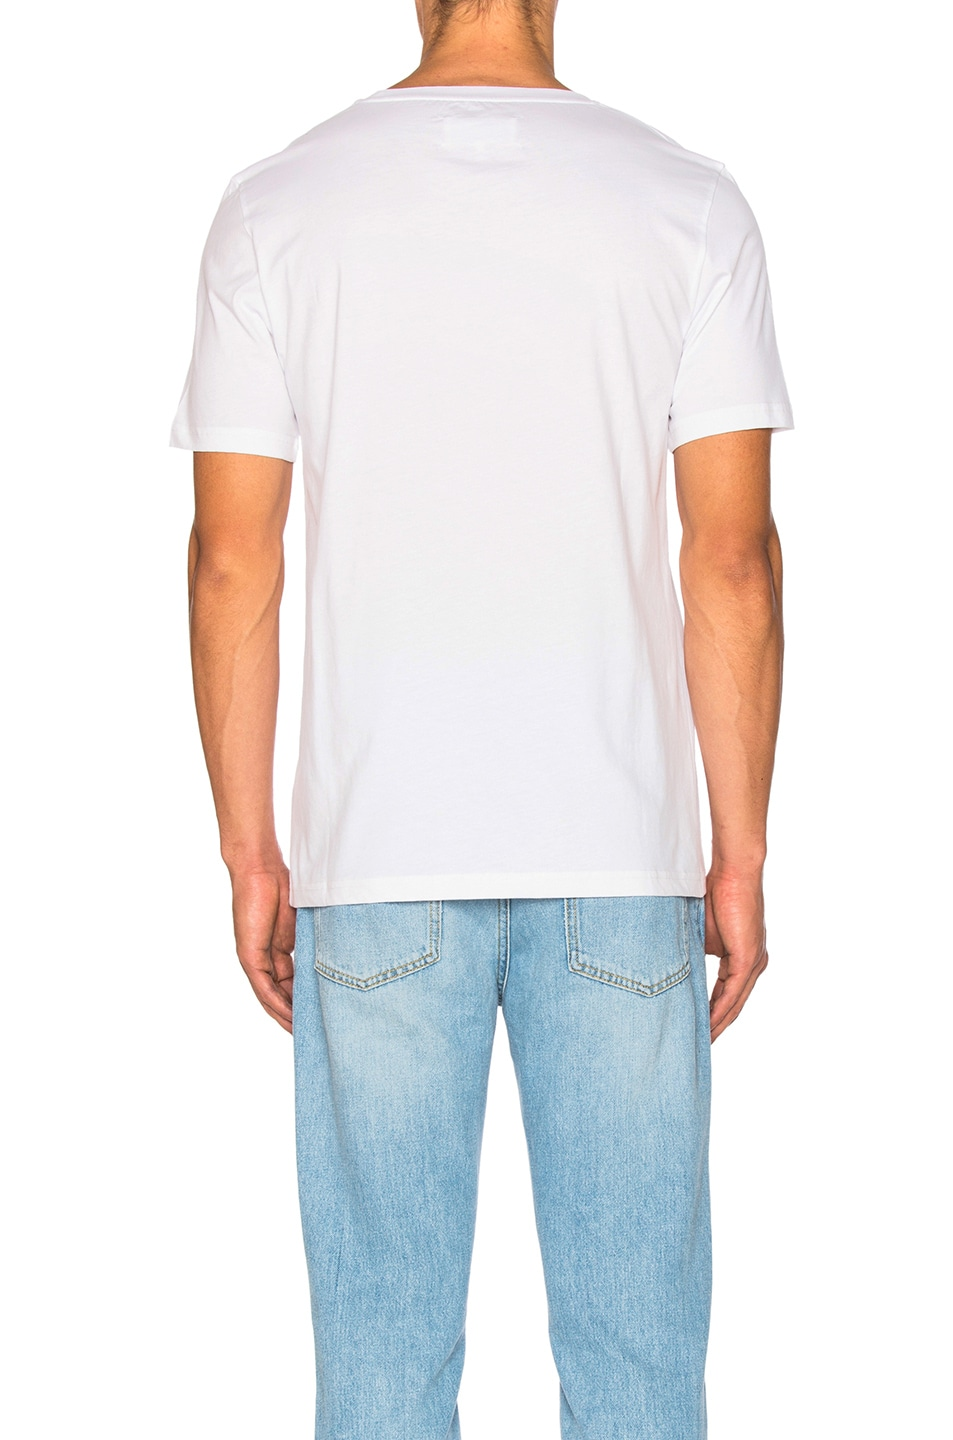 Image 4 of Maison Margiela Garment Dyed Basic Tee in White